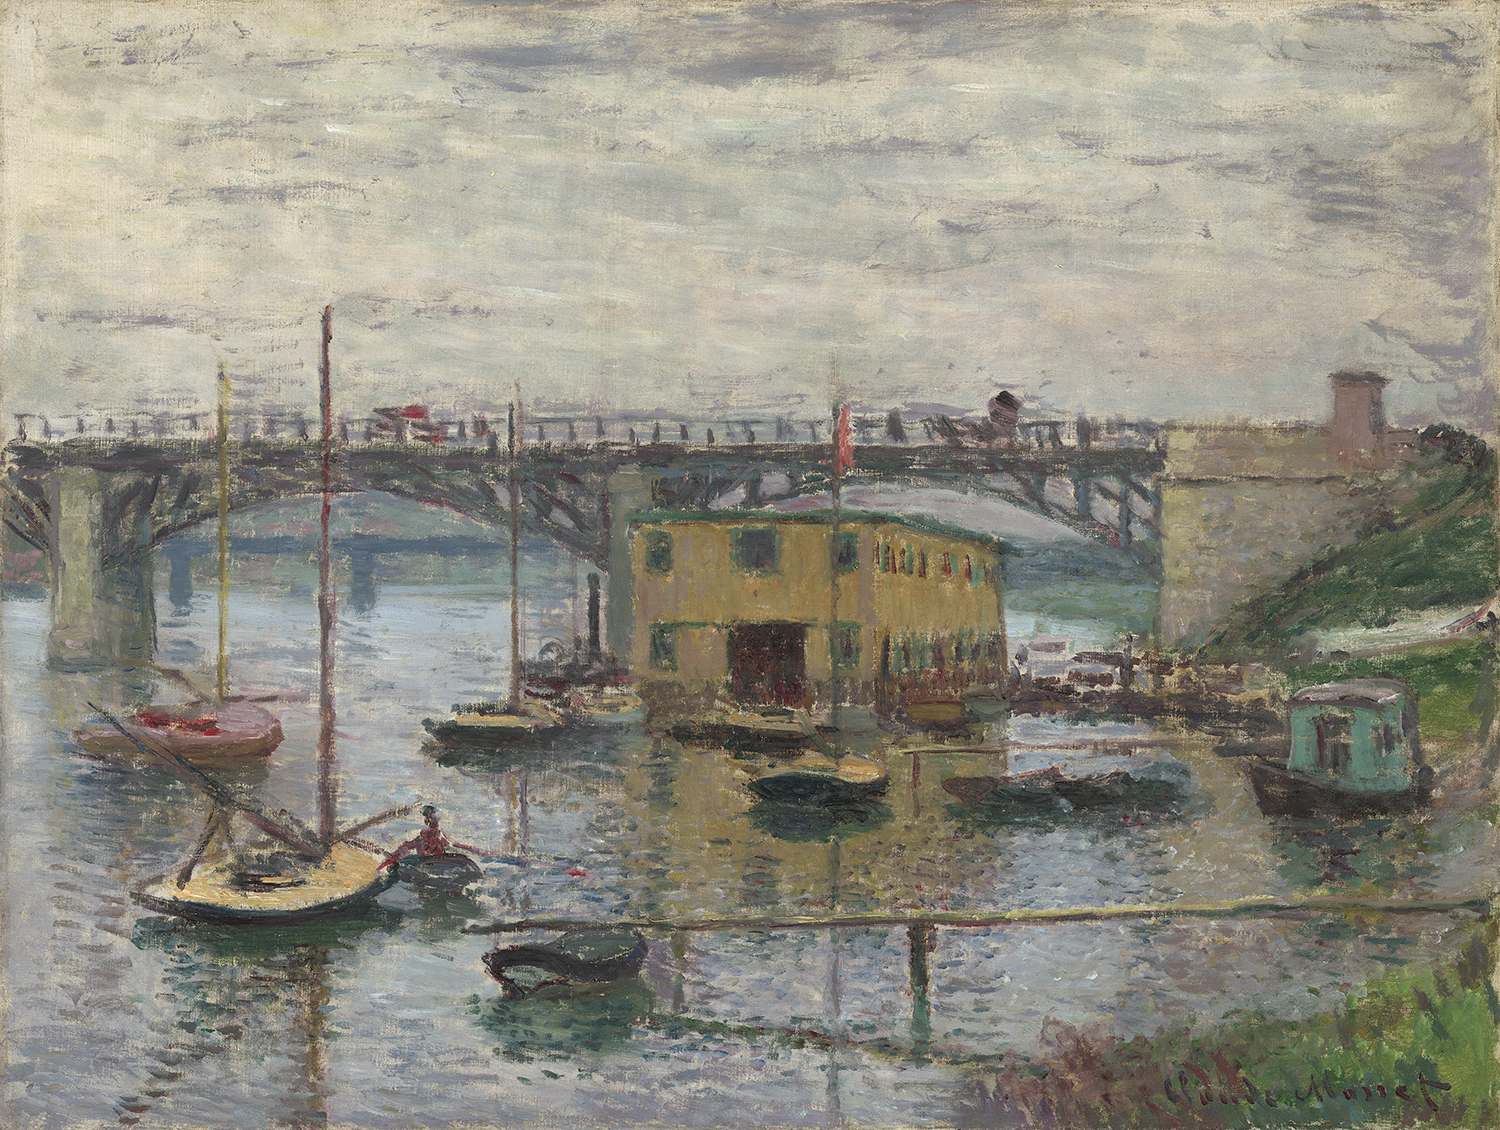 https://www.dia.org/sites/default/files/bridge_at_argenteuil_on_a_gray_day_about_1876_claude_monet.jpg